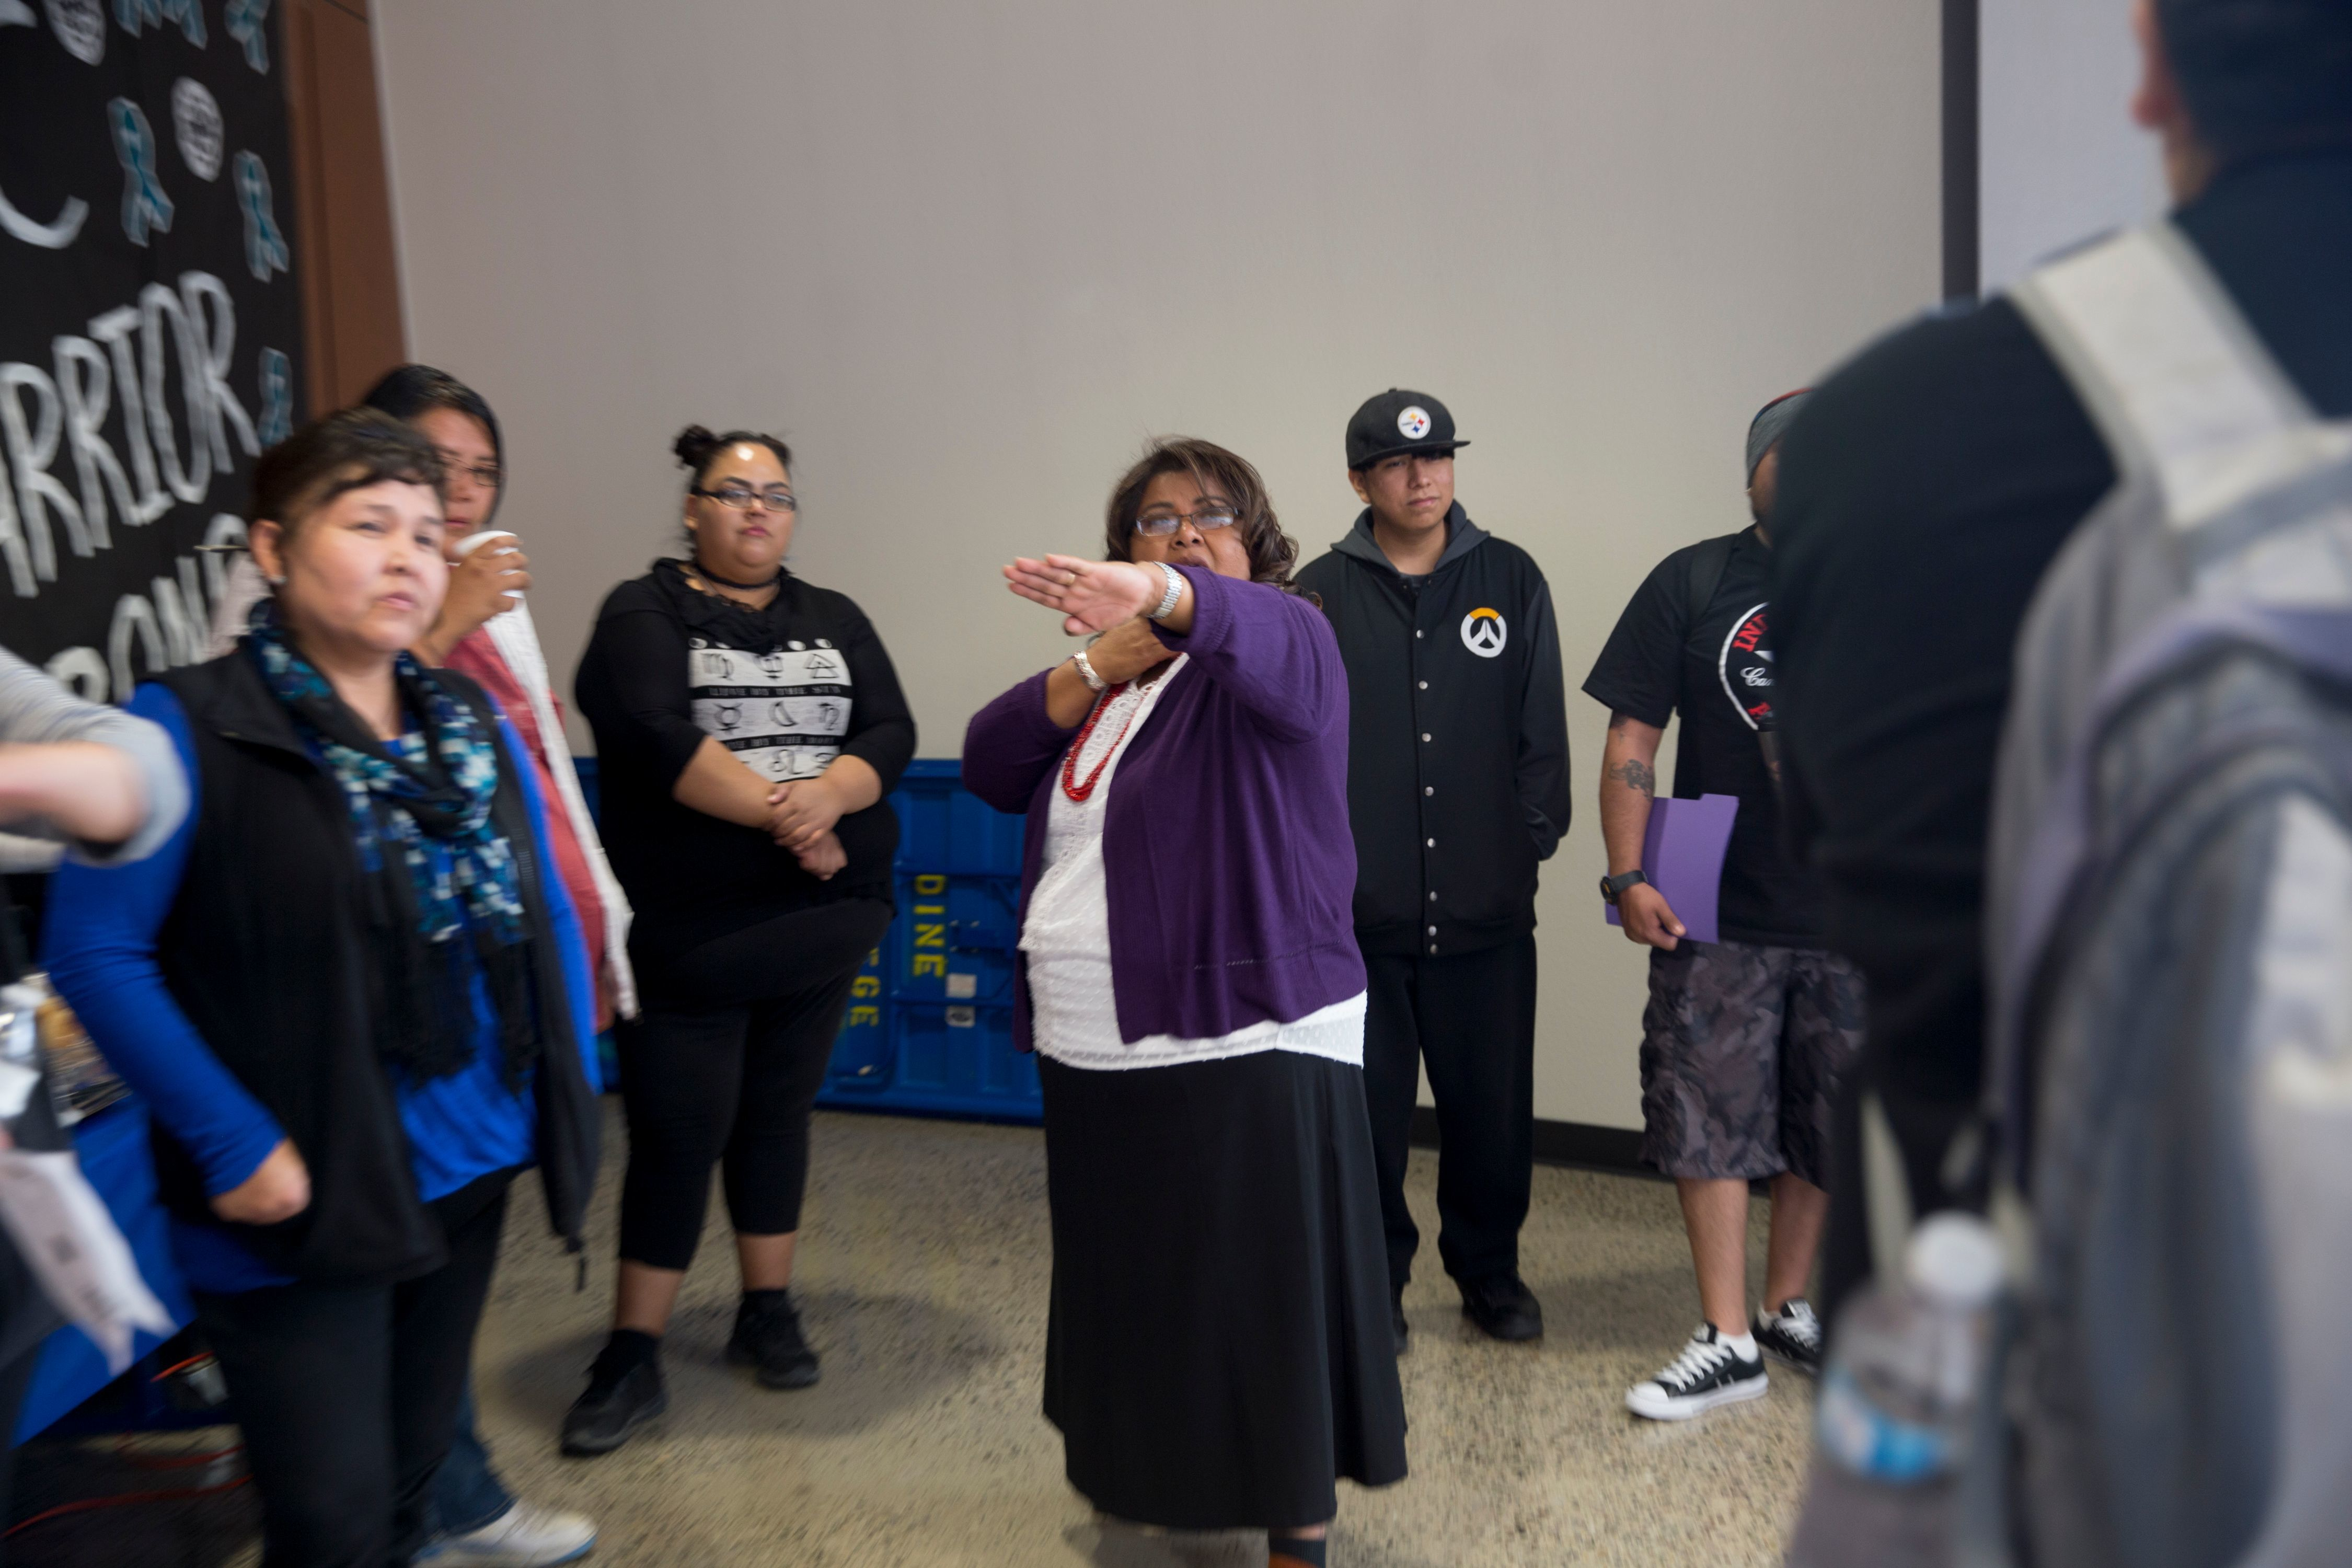 Diné College employee Lavine Blackmountain addresses a question to self-defense instructor Donny Moore during a sexual assault awareness and prevention conference on April 12, 2018 at the Sen. John Pinto Library at Diné College's south campus in Shiprock.